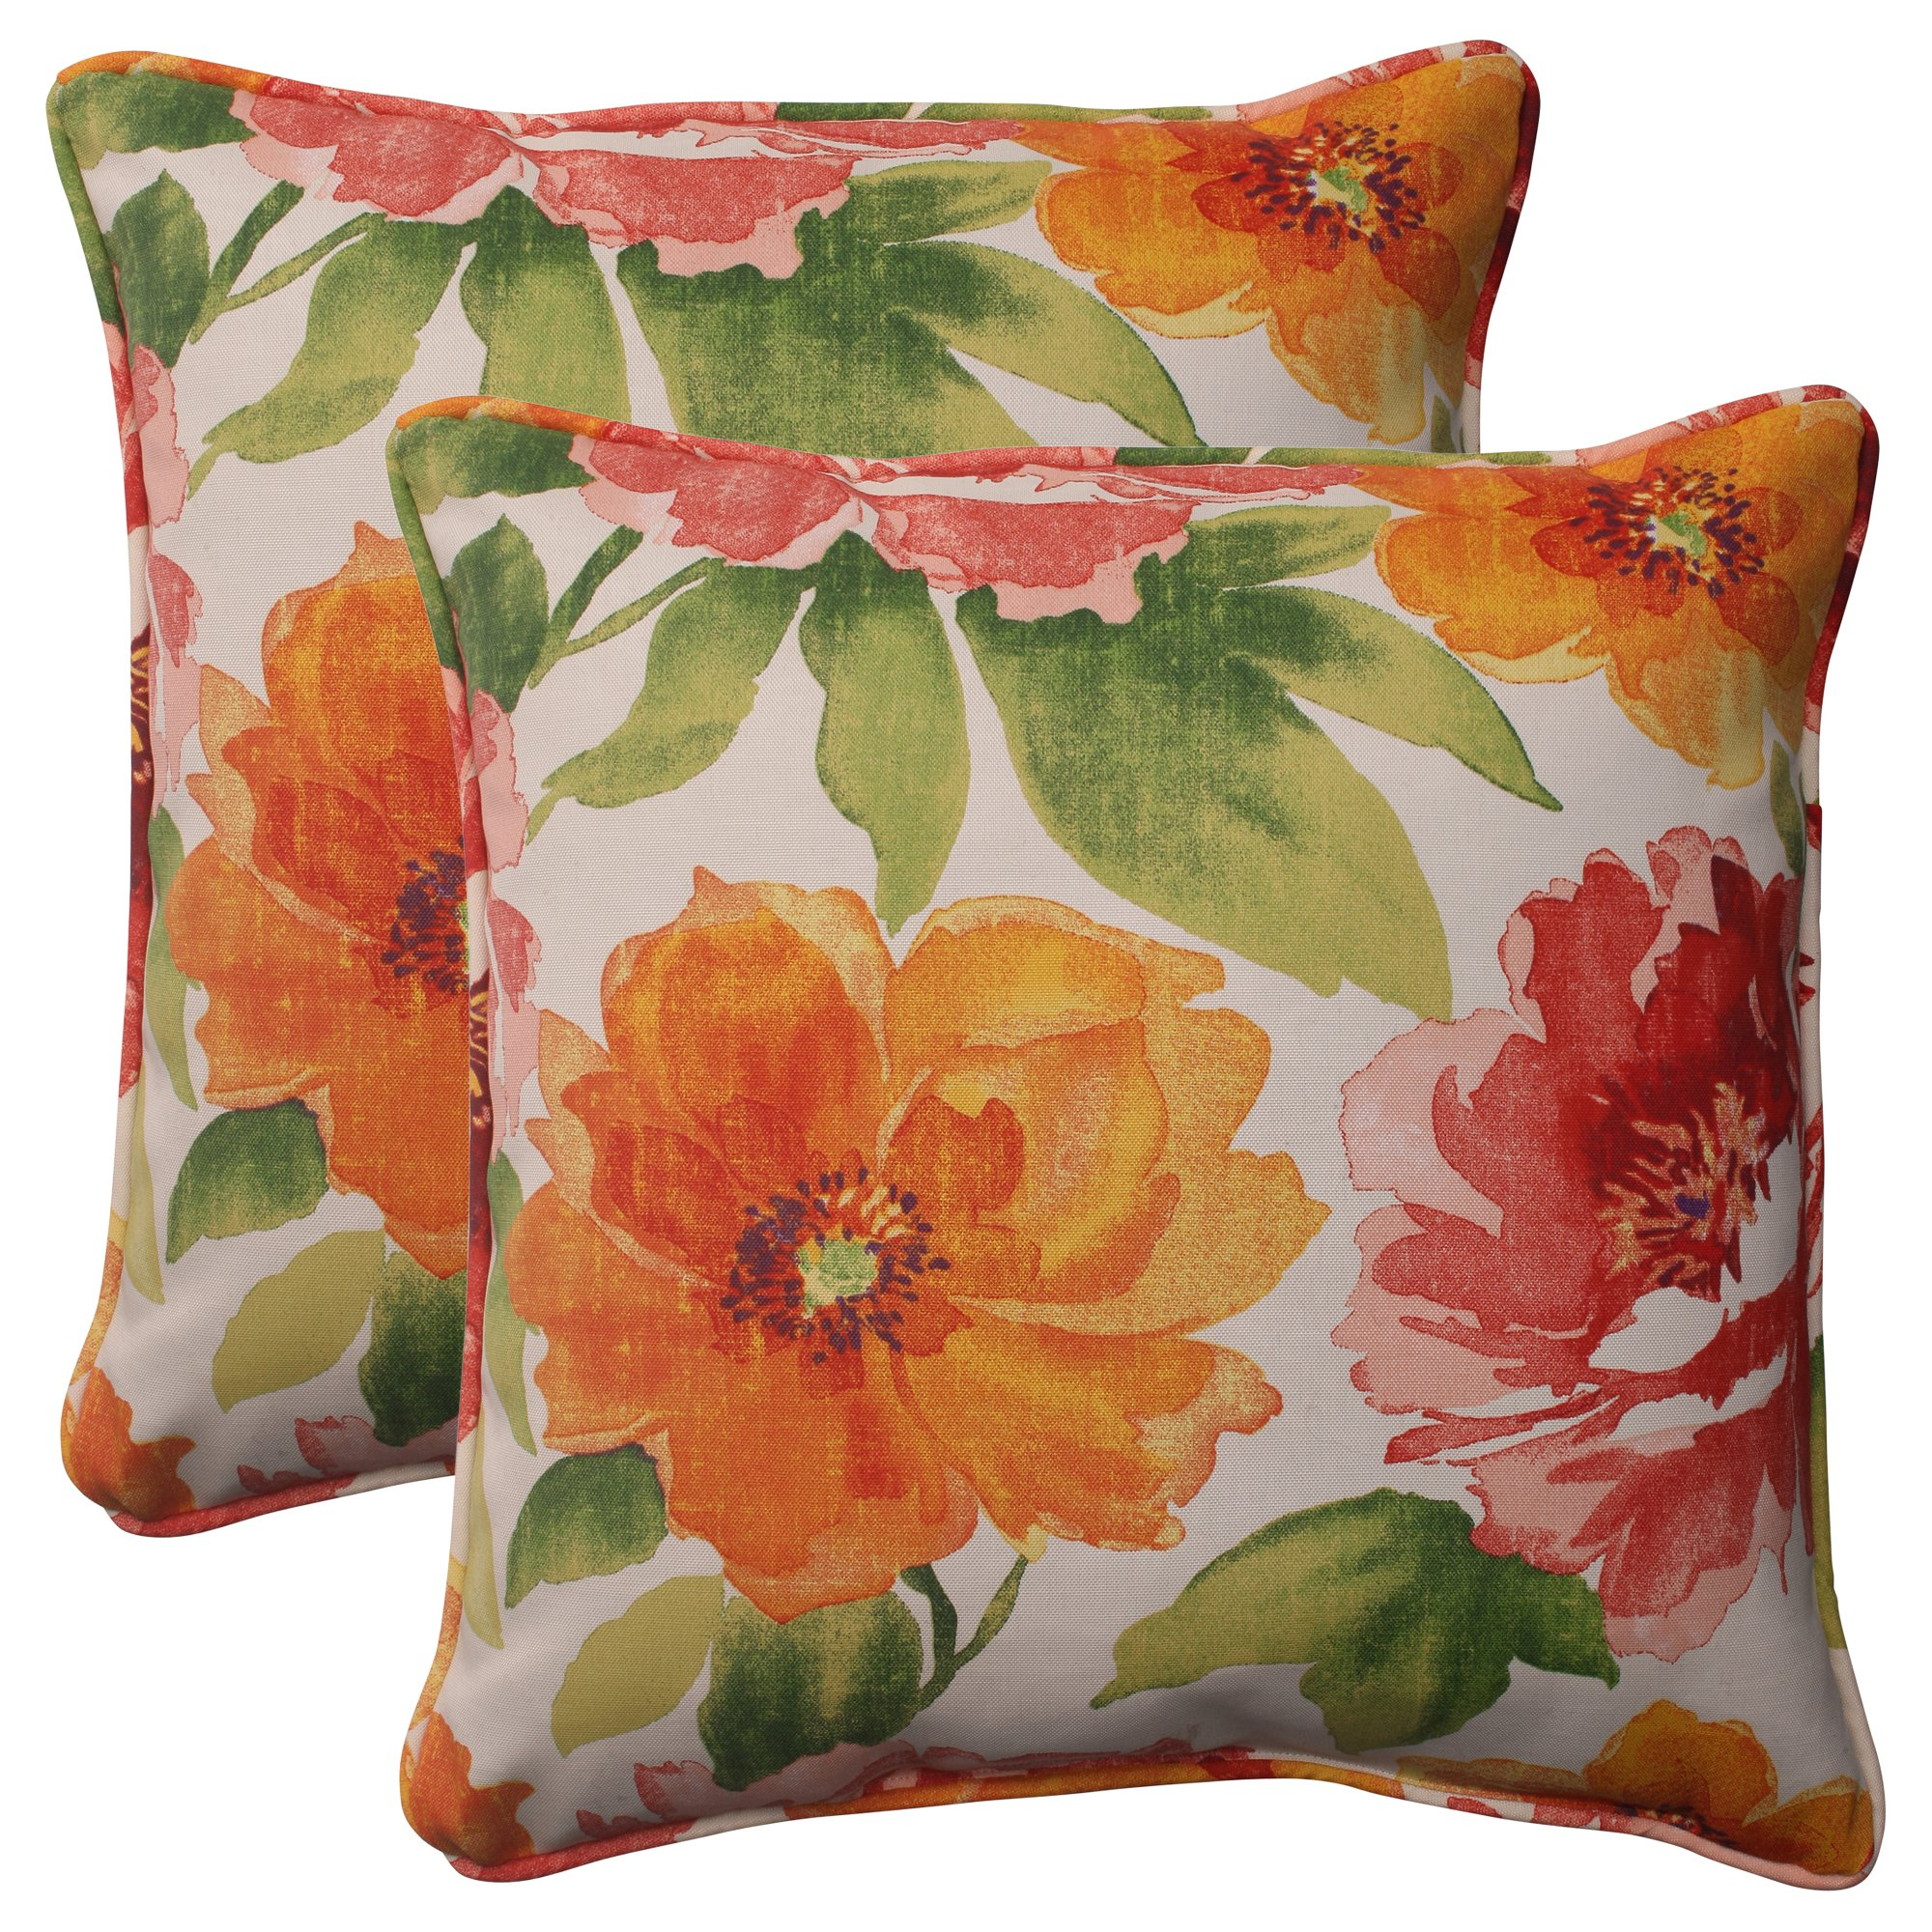 Pillow Perfect Outdoor Primro Corded Throw Pillow, 18.5-Inch, Orange, Set of 2